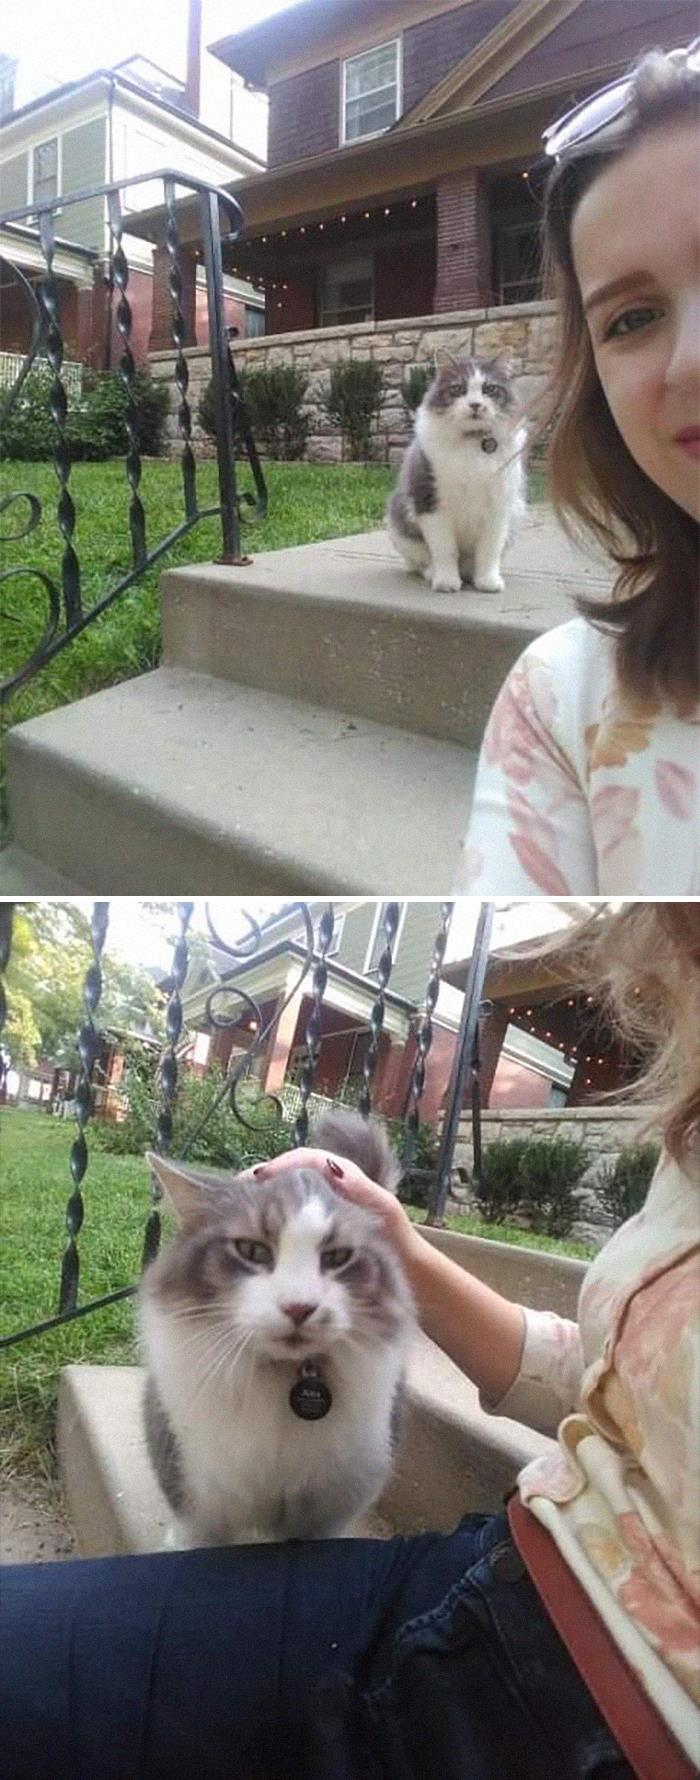 I Met The Cat Of My Dreams Today Named Alex. Pretty Sure He Was A Maine Coon Based On His Sweet Puppy Dog Demeanor. He Demanded Attention And Would Follow Me If I Continued On My Walk. I Was Absolutely Smitten With Him. Please Peruse